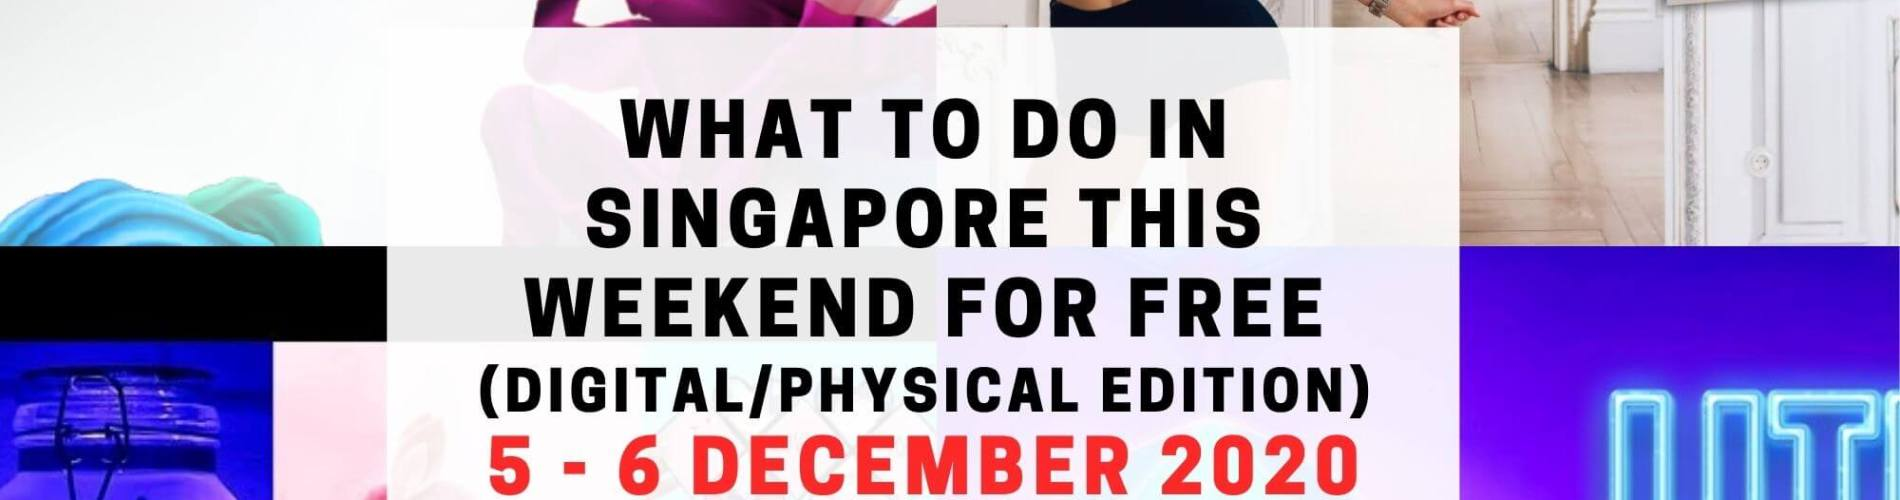 weekends what to do singapore december 2020